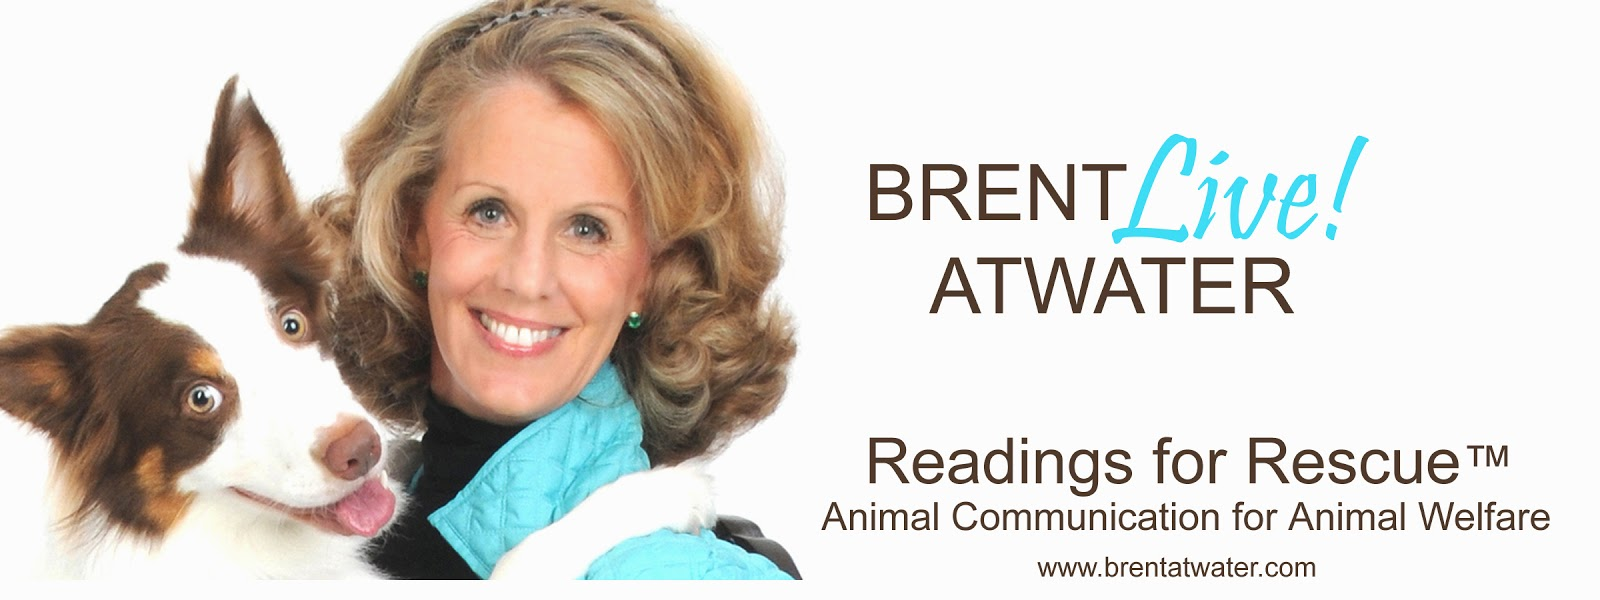 Readings for Rescue